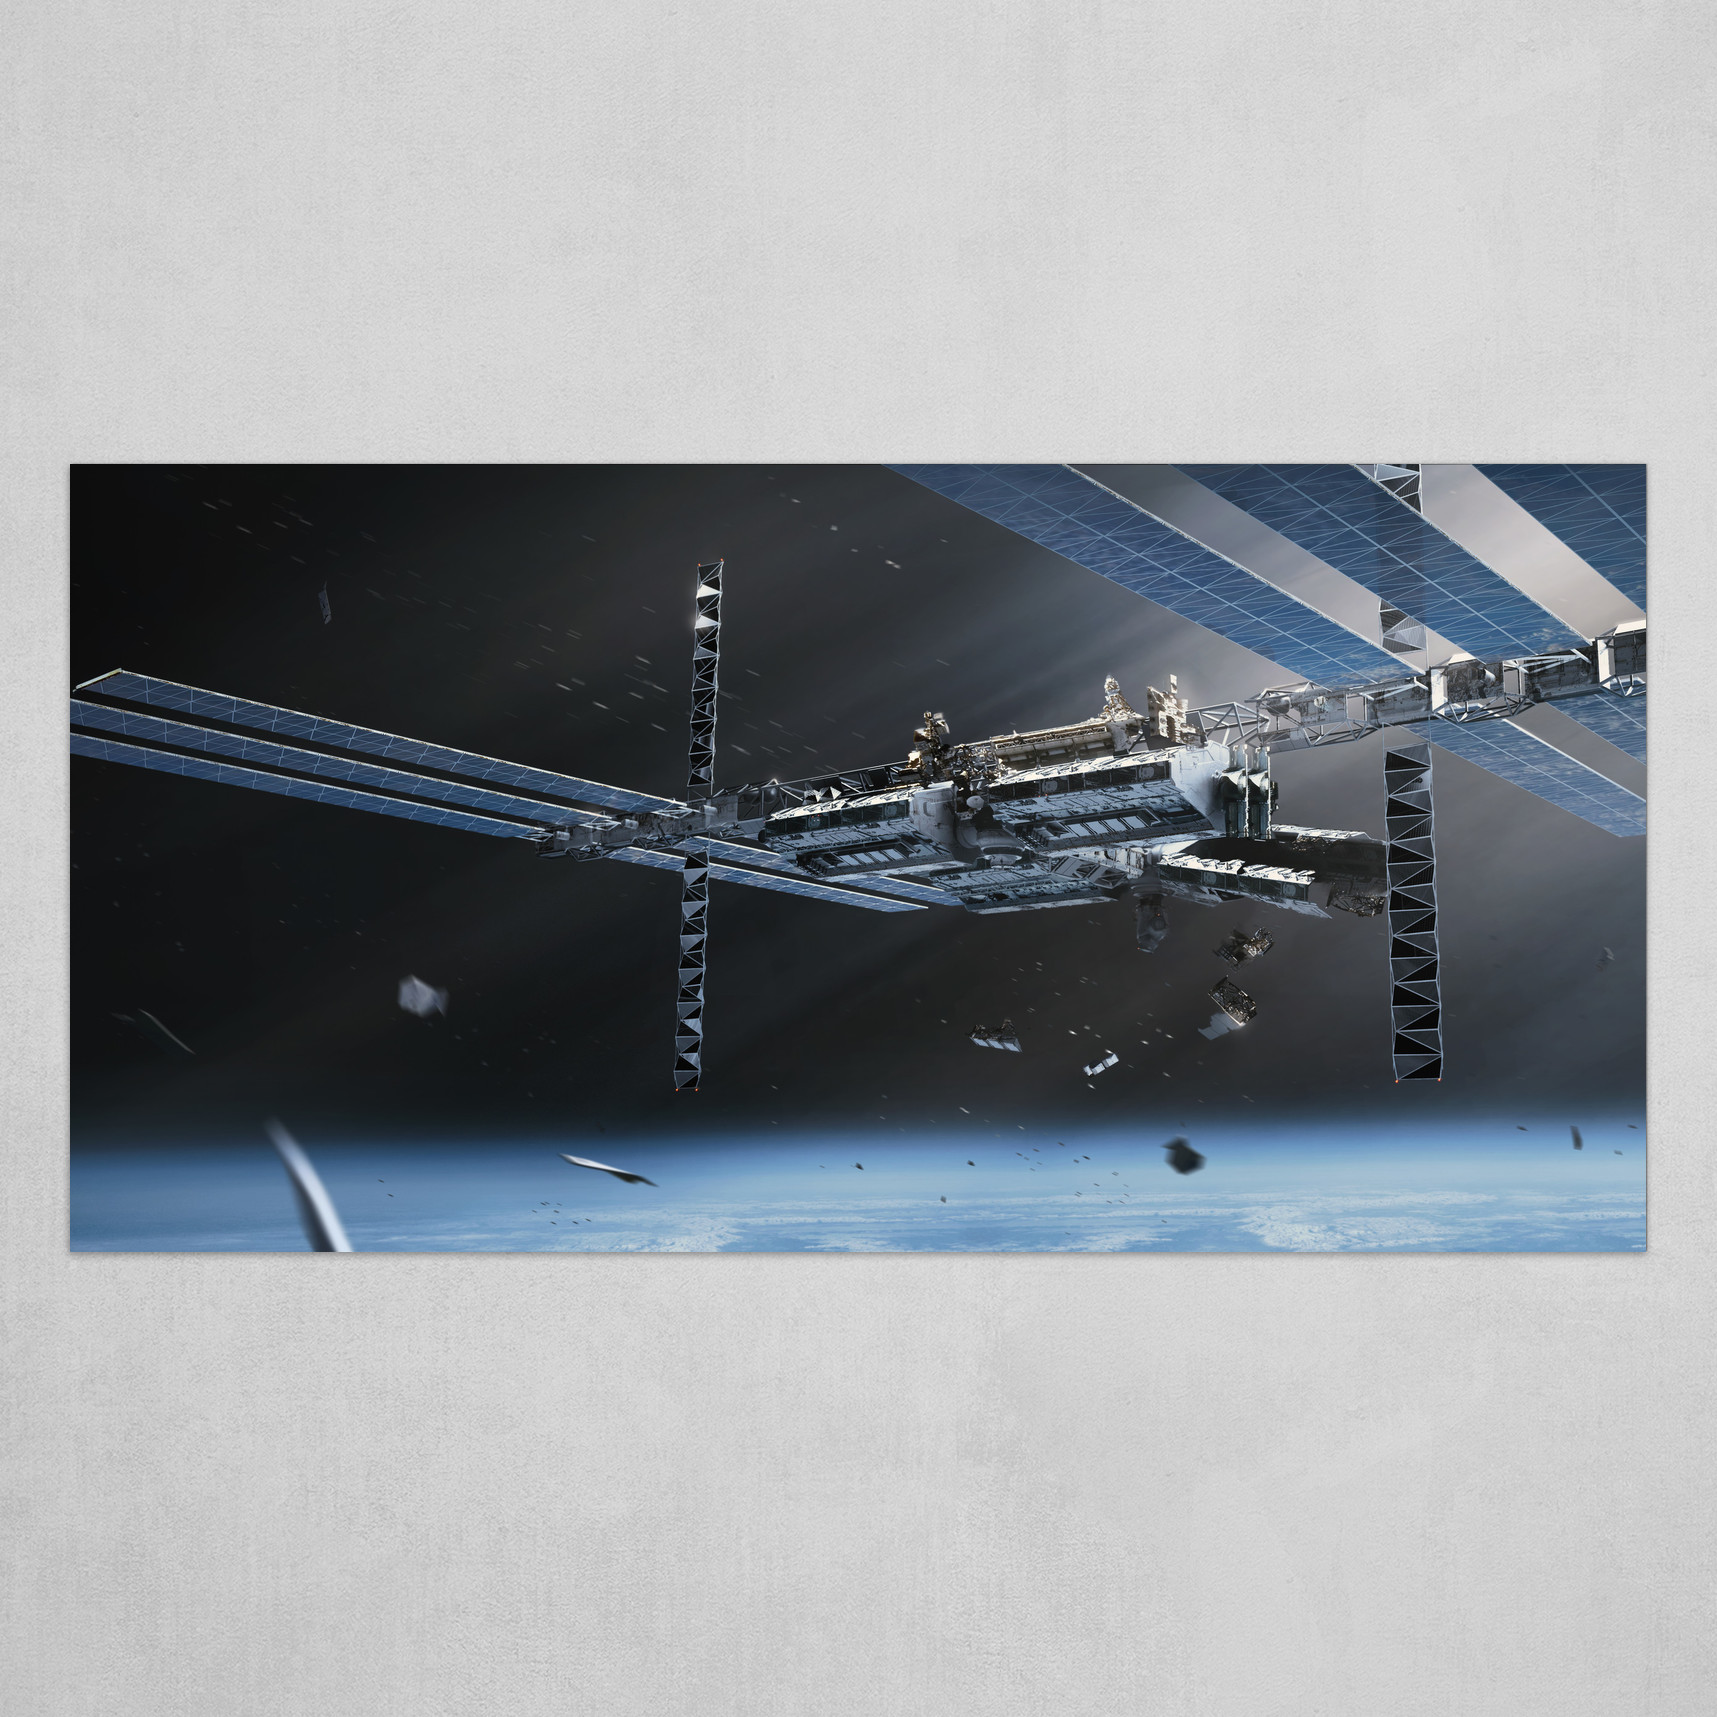 Feral Orbit - Station Exterior